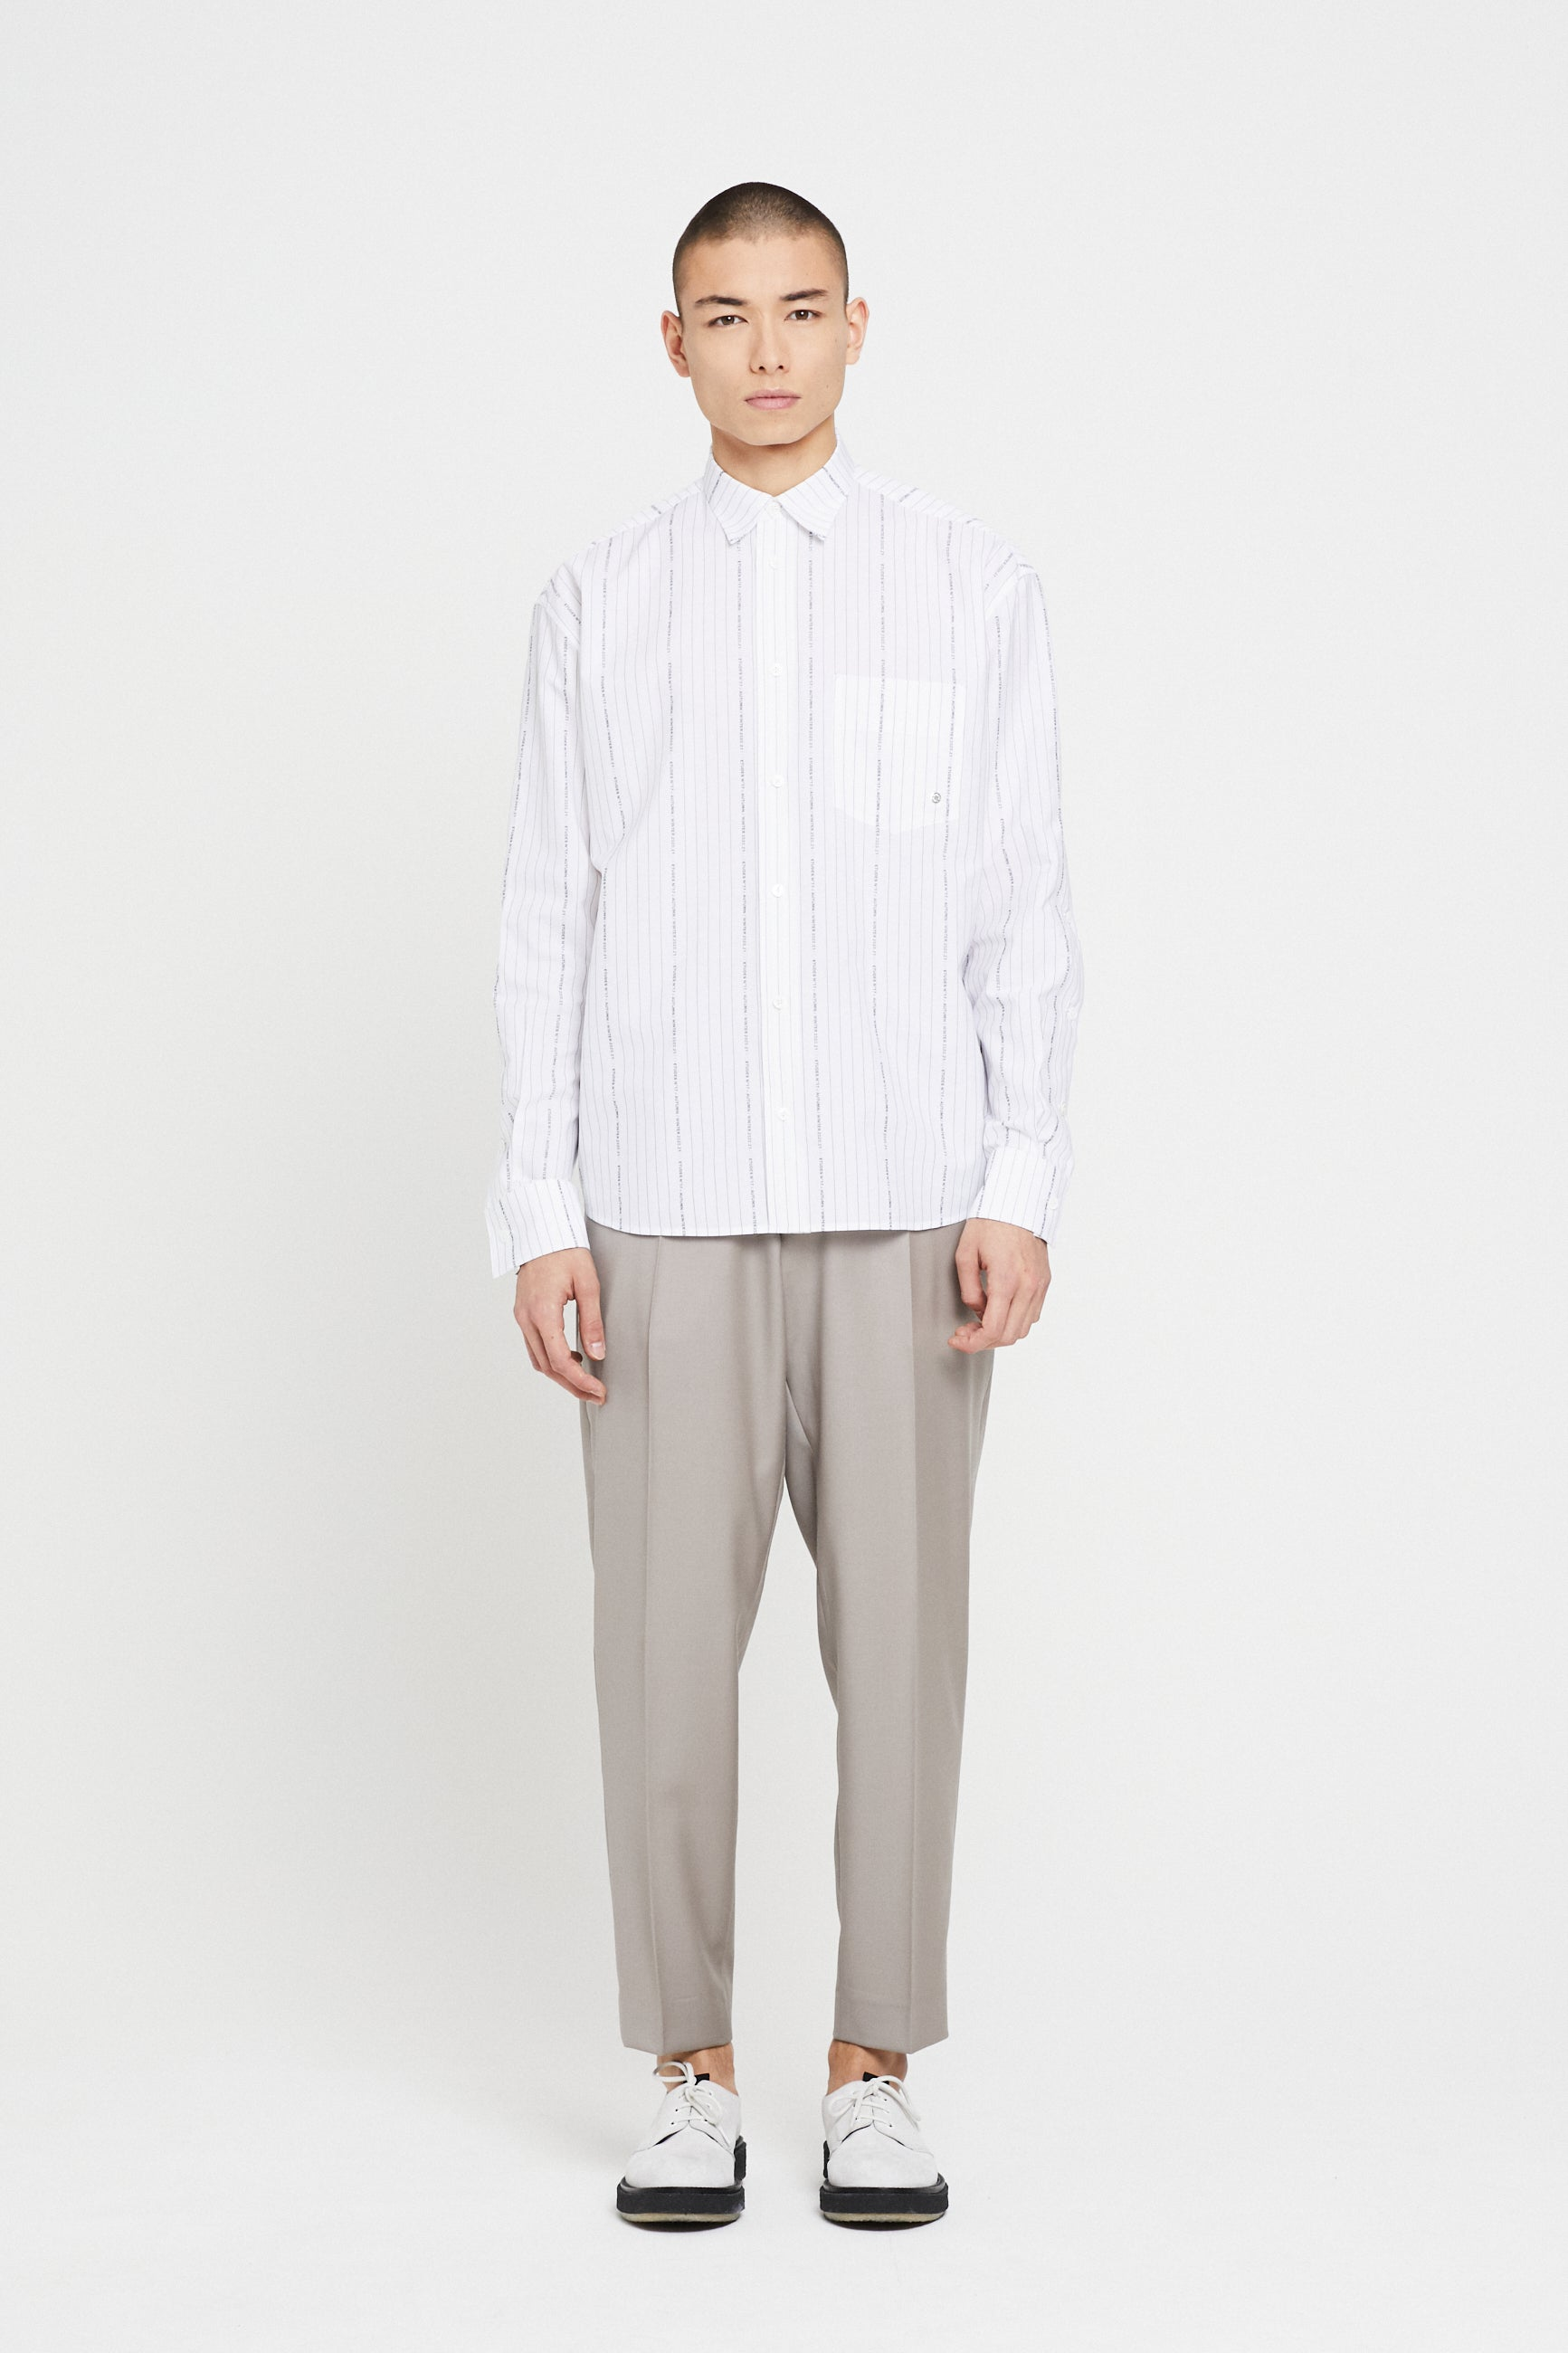 Études Address Striped Jacquard Shirt 1